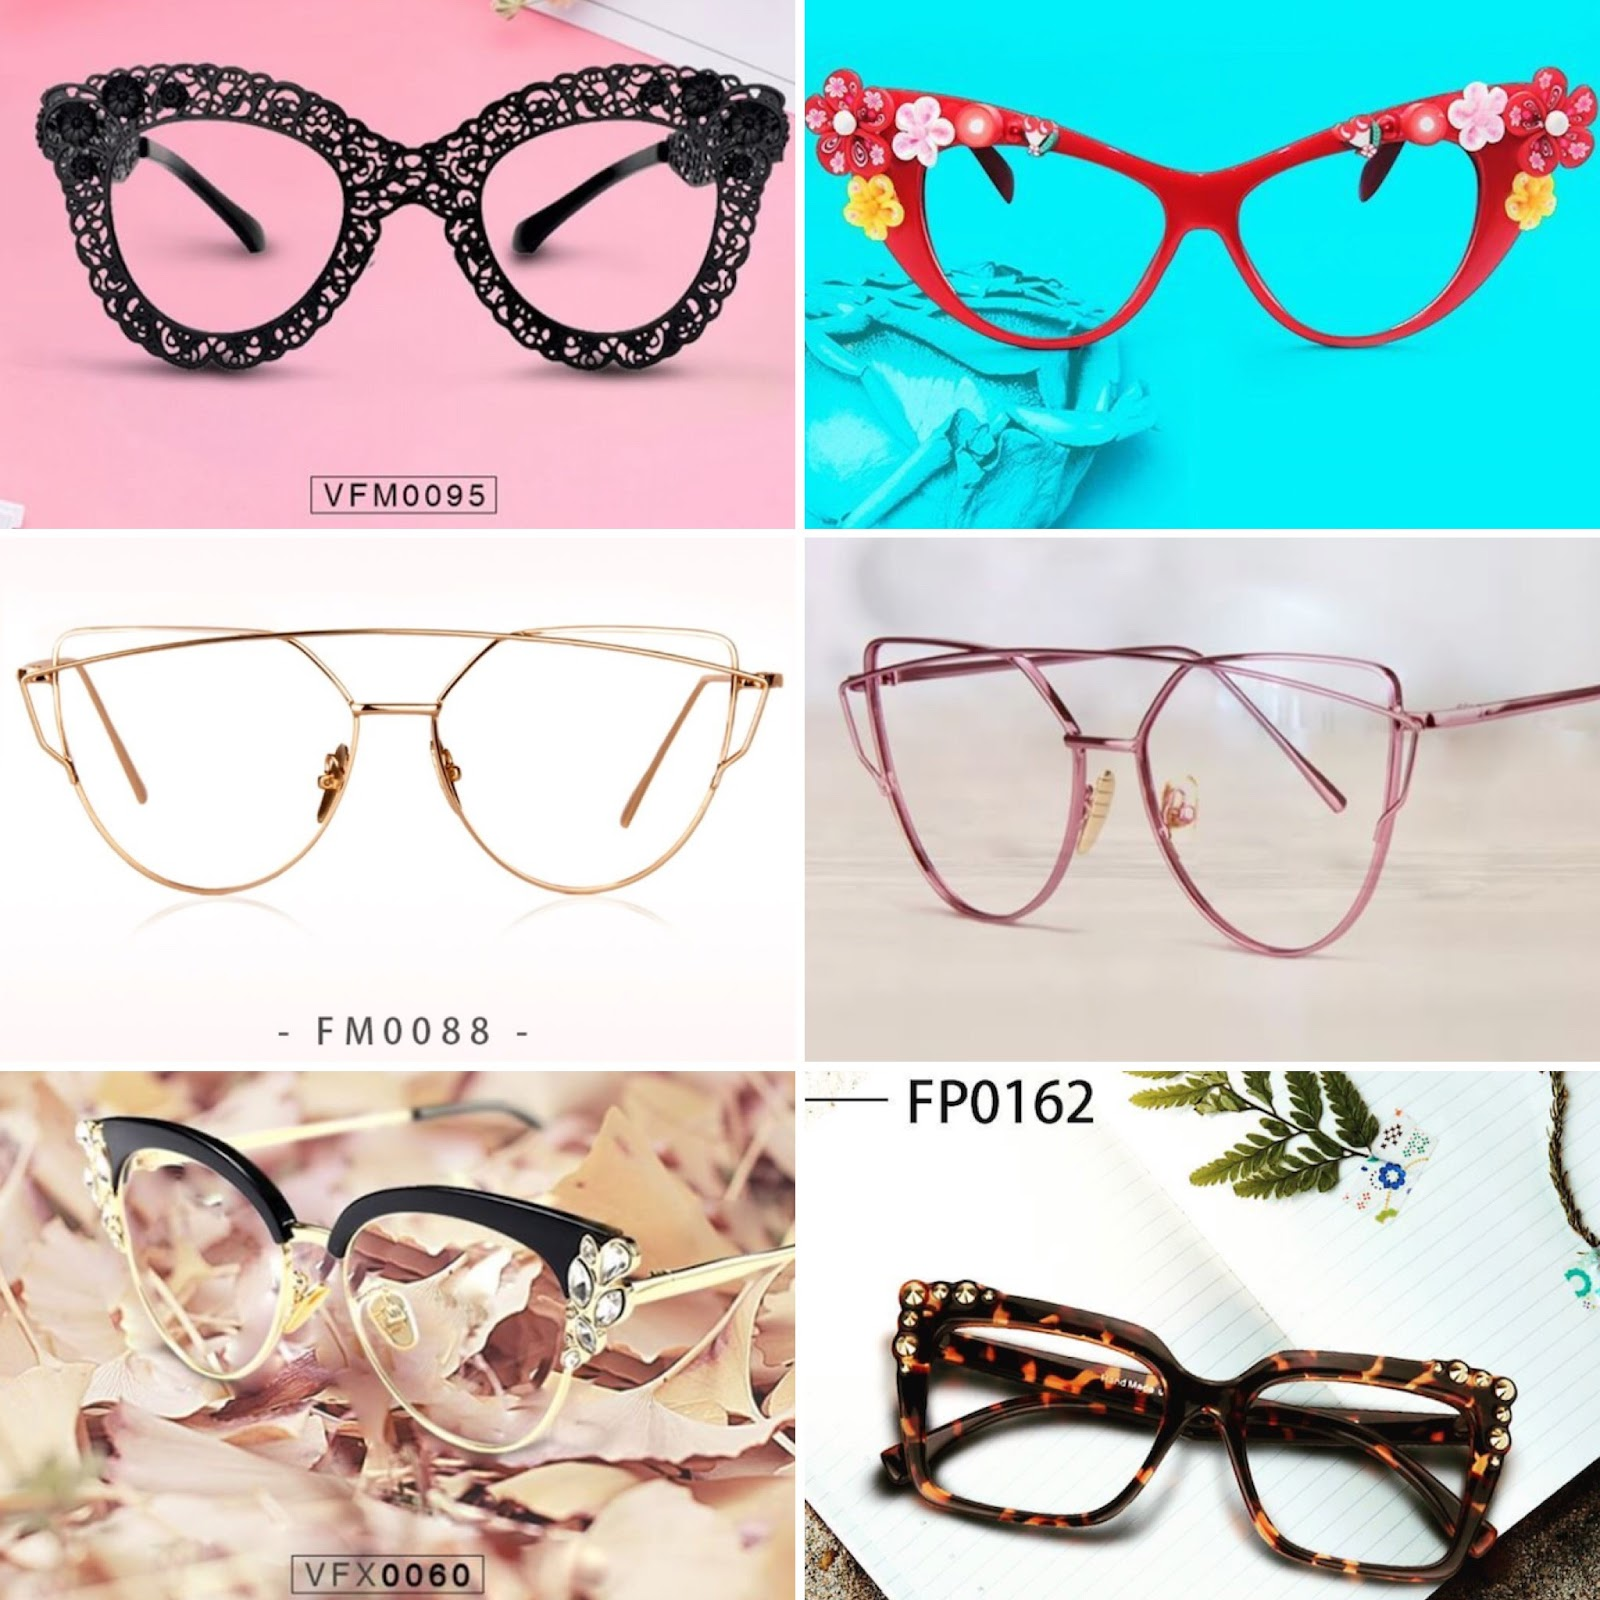 86f68637c Top: Bella Black Cat Eye Glasses VFM0095-01 {really want these but they are  out of stock}